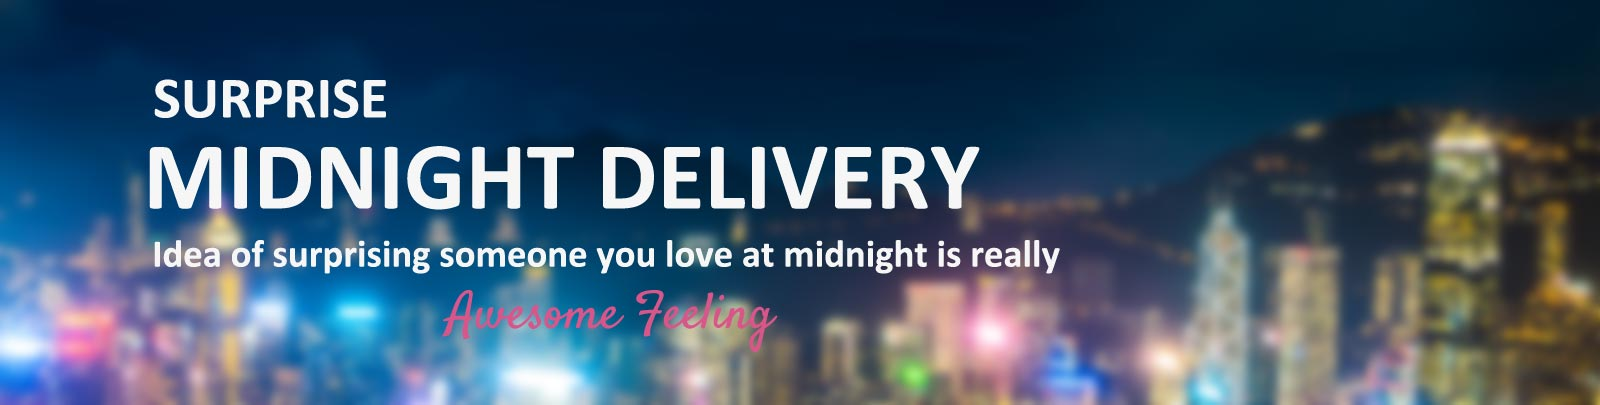 Midnight Gifts Delivery